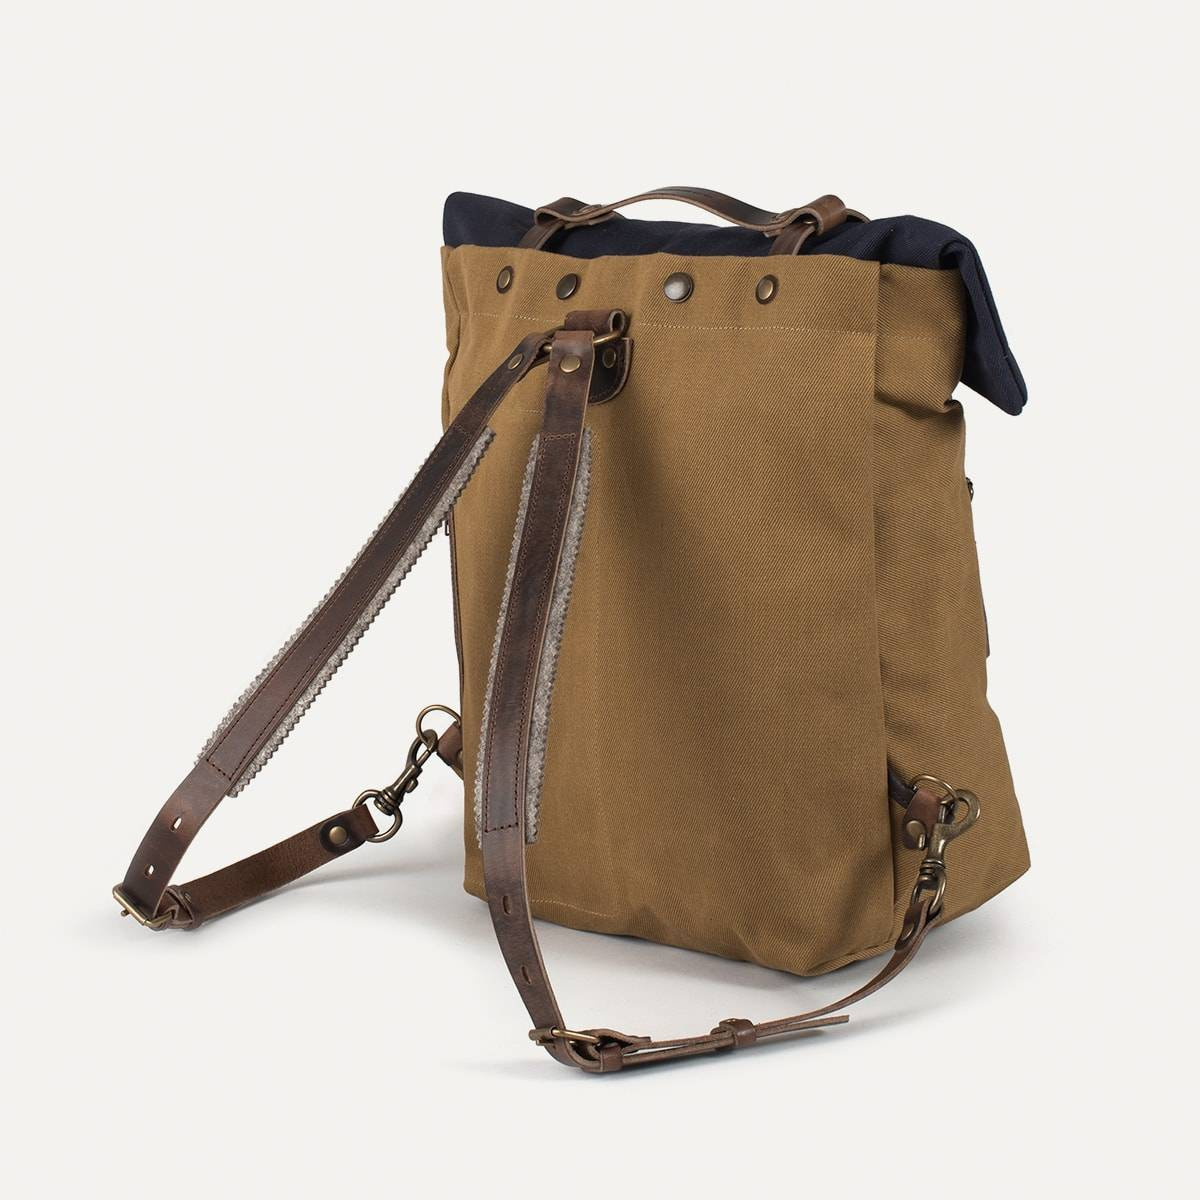 Blitz Motorcycles Scout Backpack - Navy/Camel (image n°4)